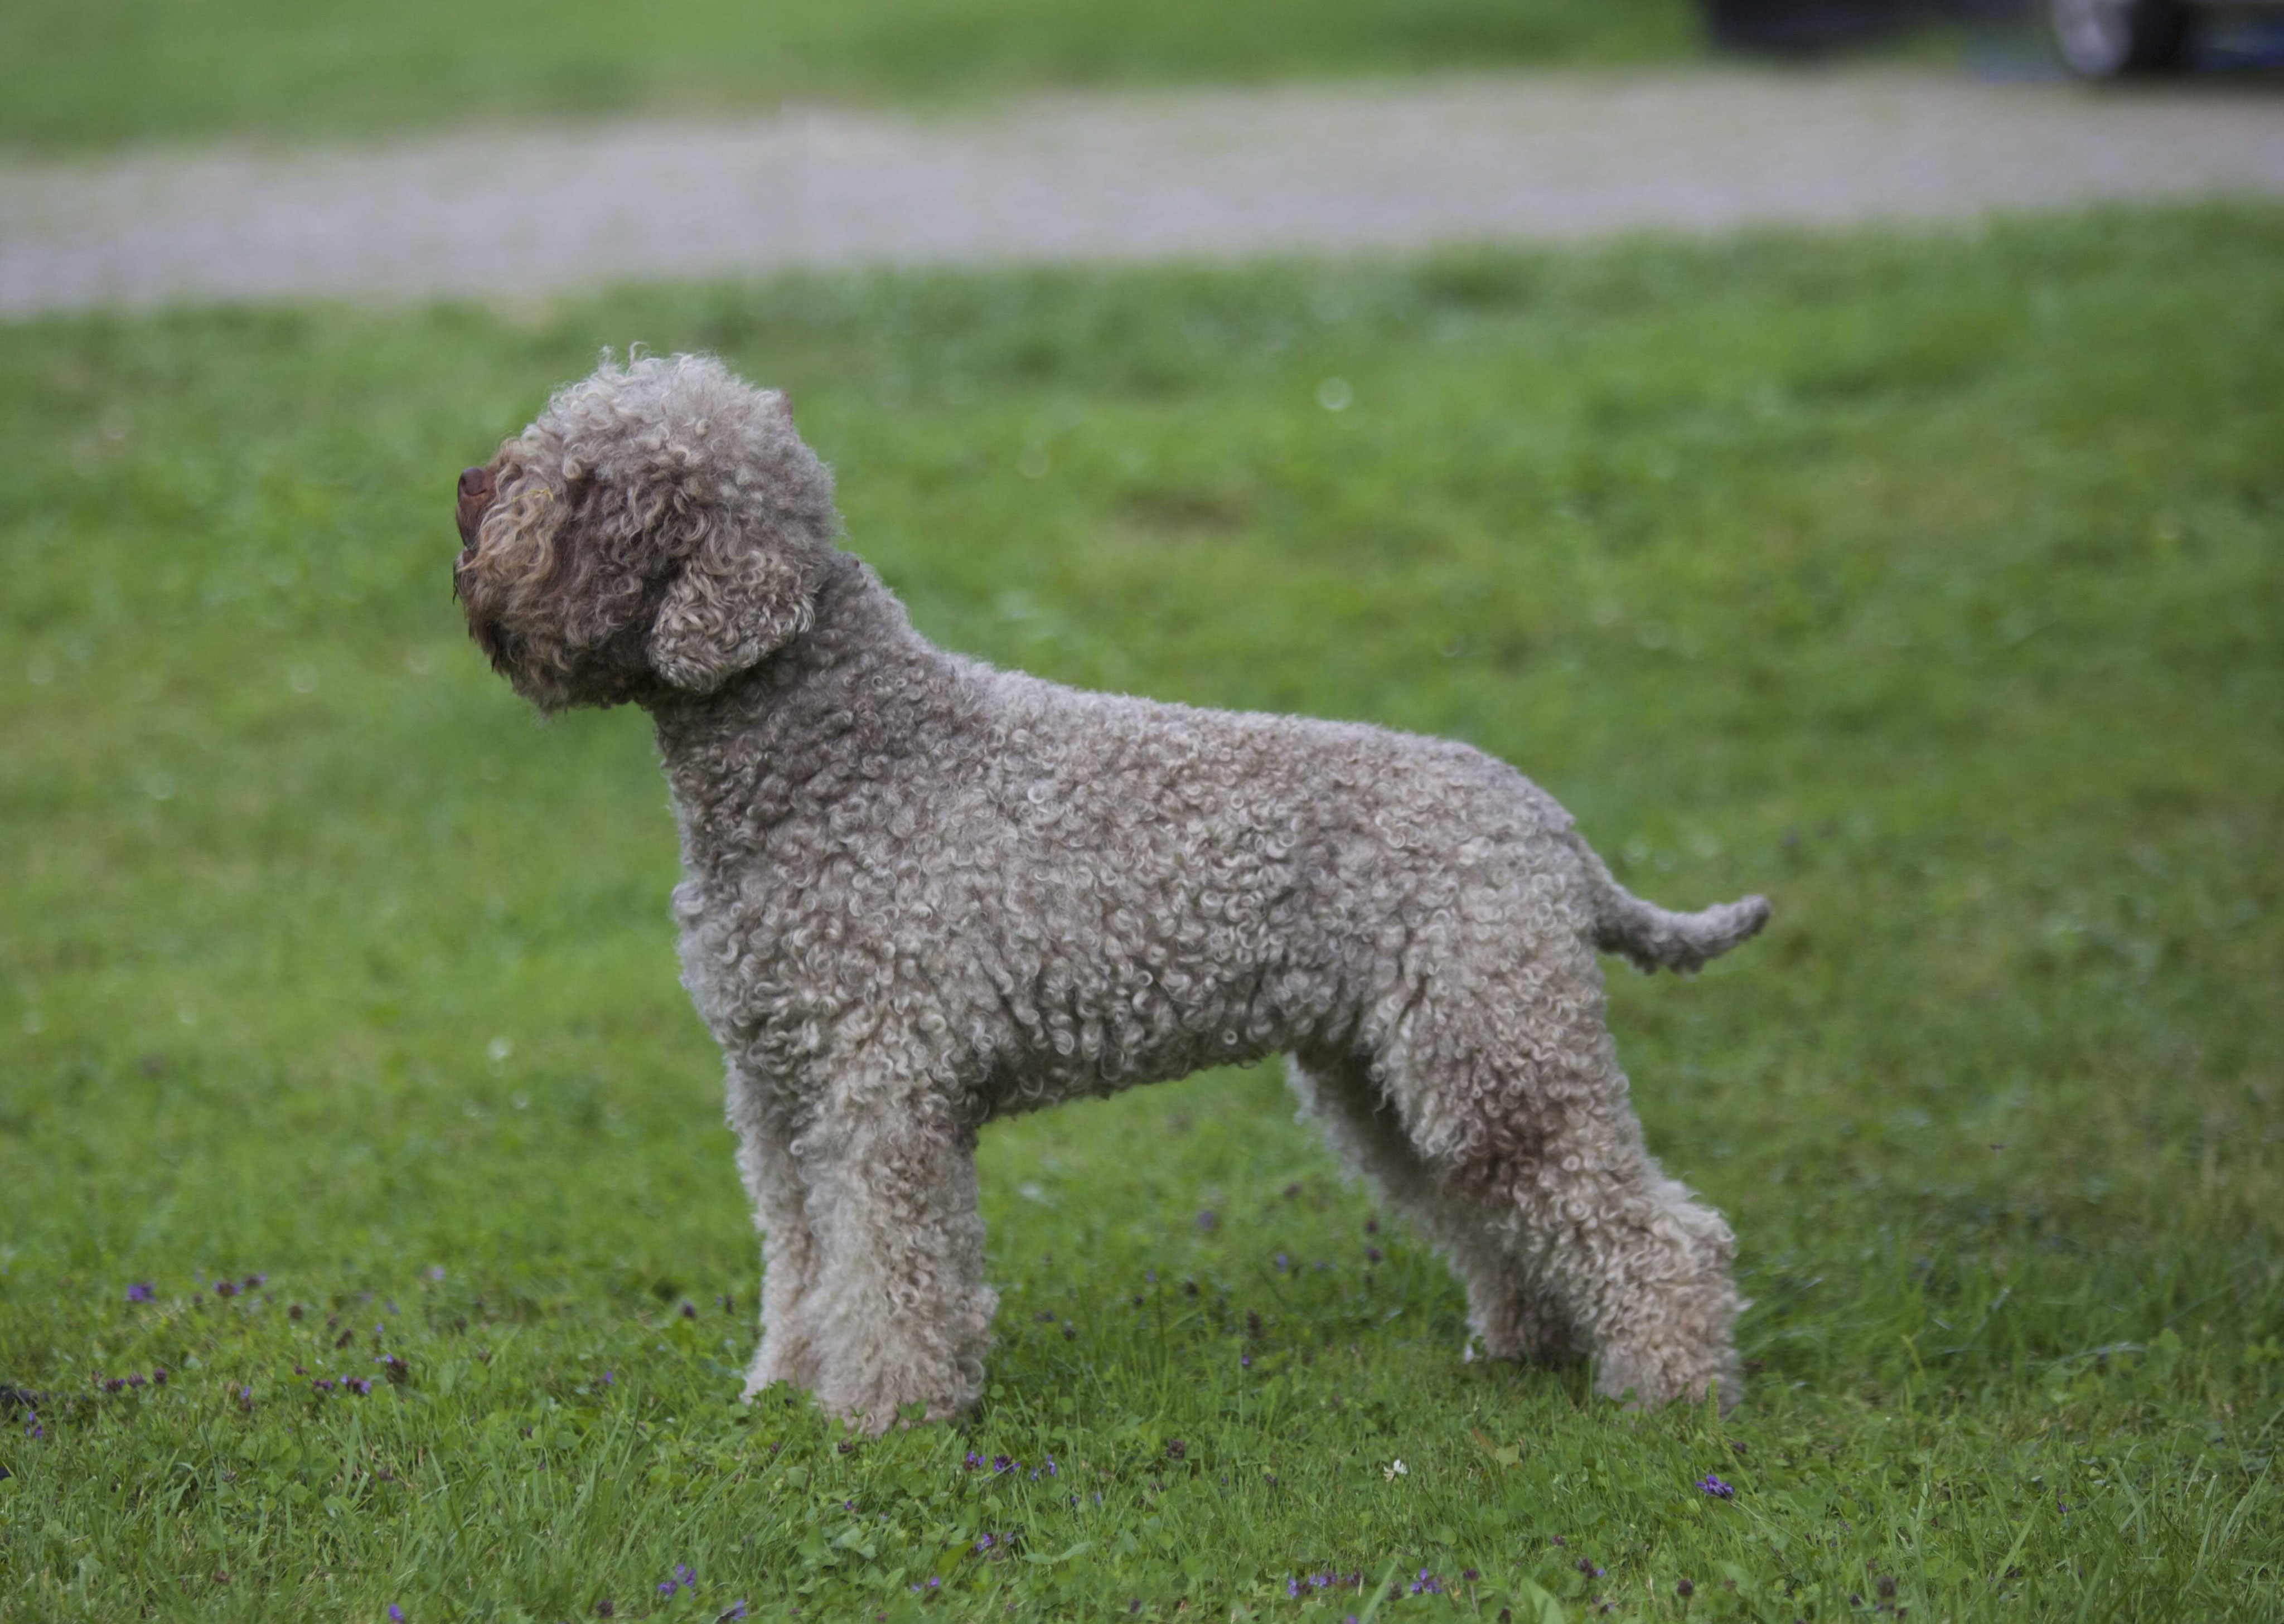 Curly Coats Lagotto Our Males Curly Coats Lagotto Romagnolo